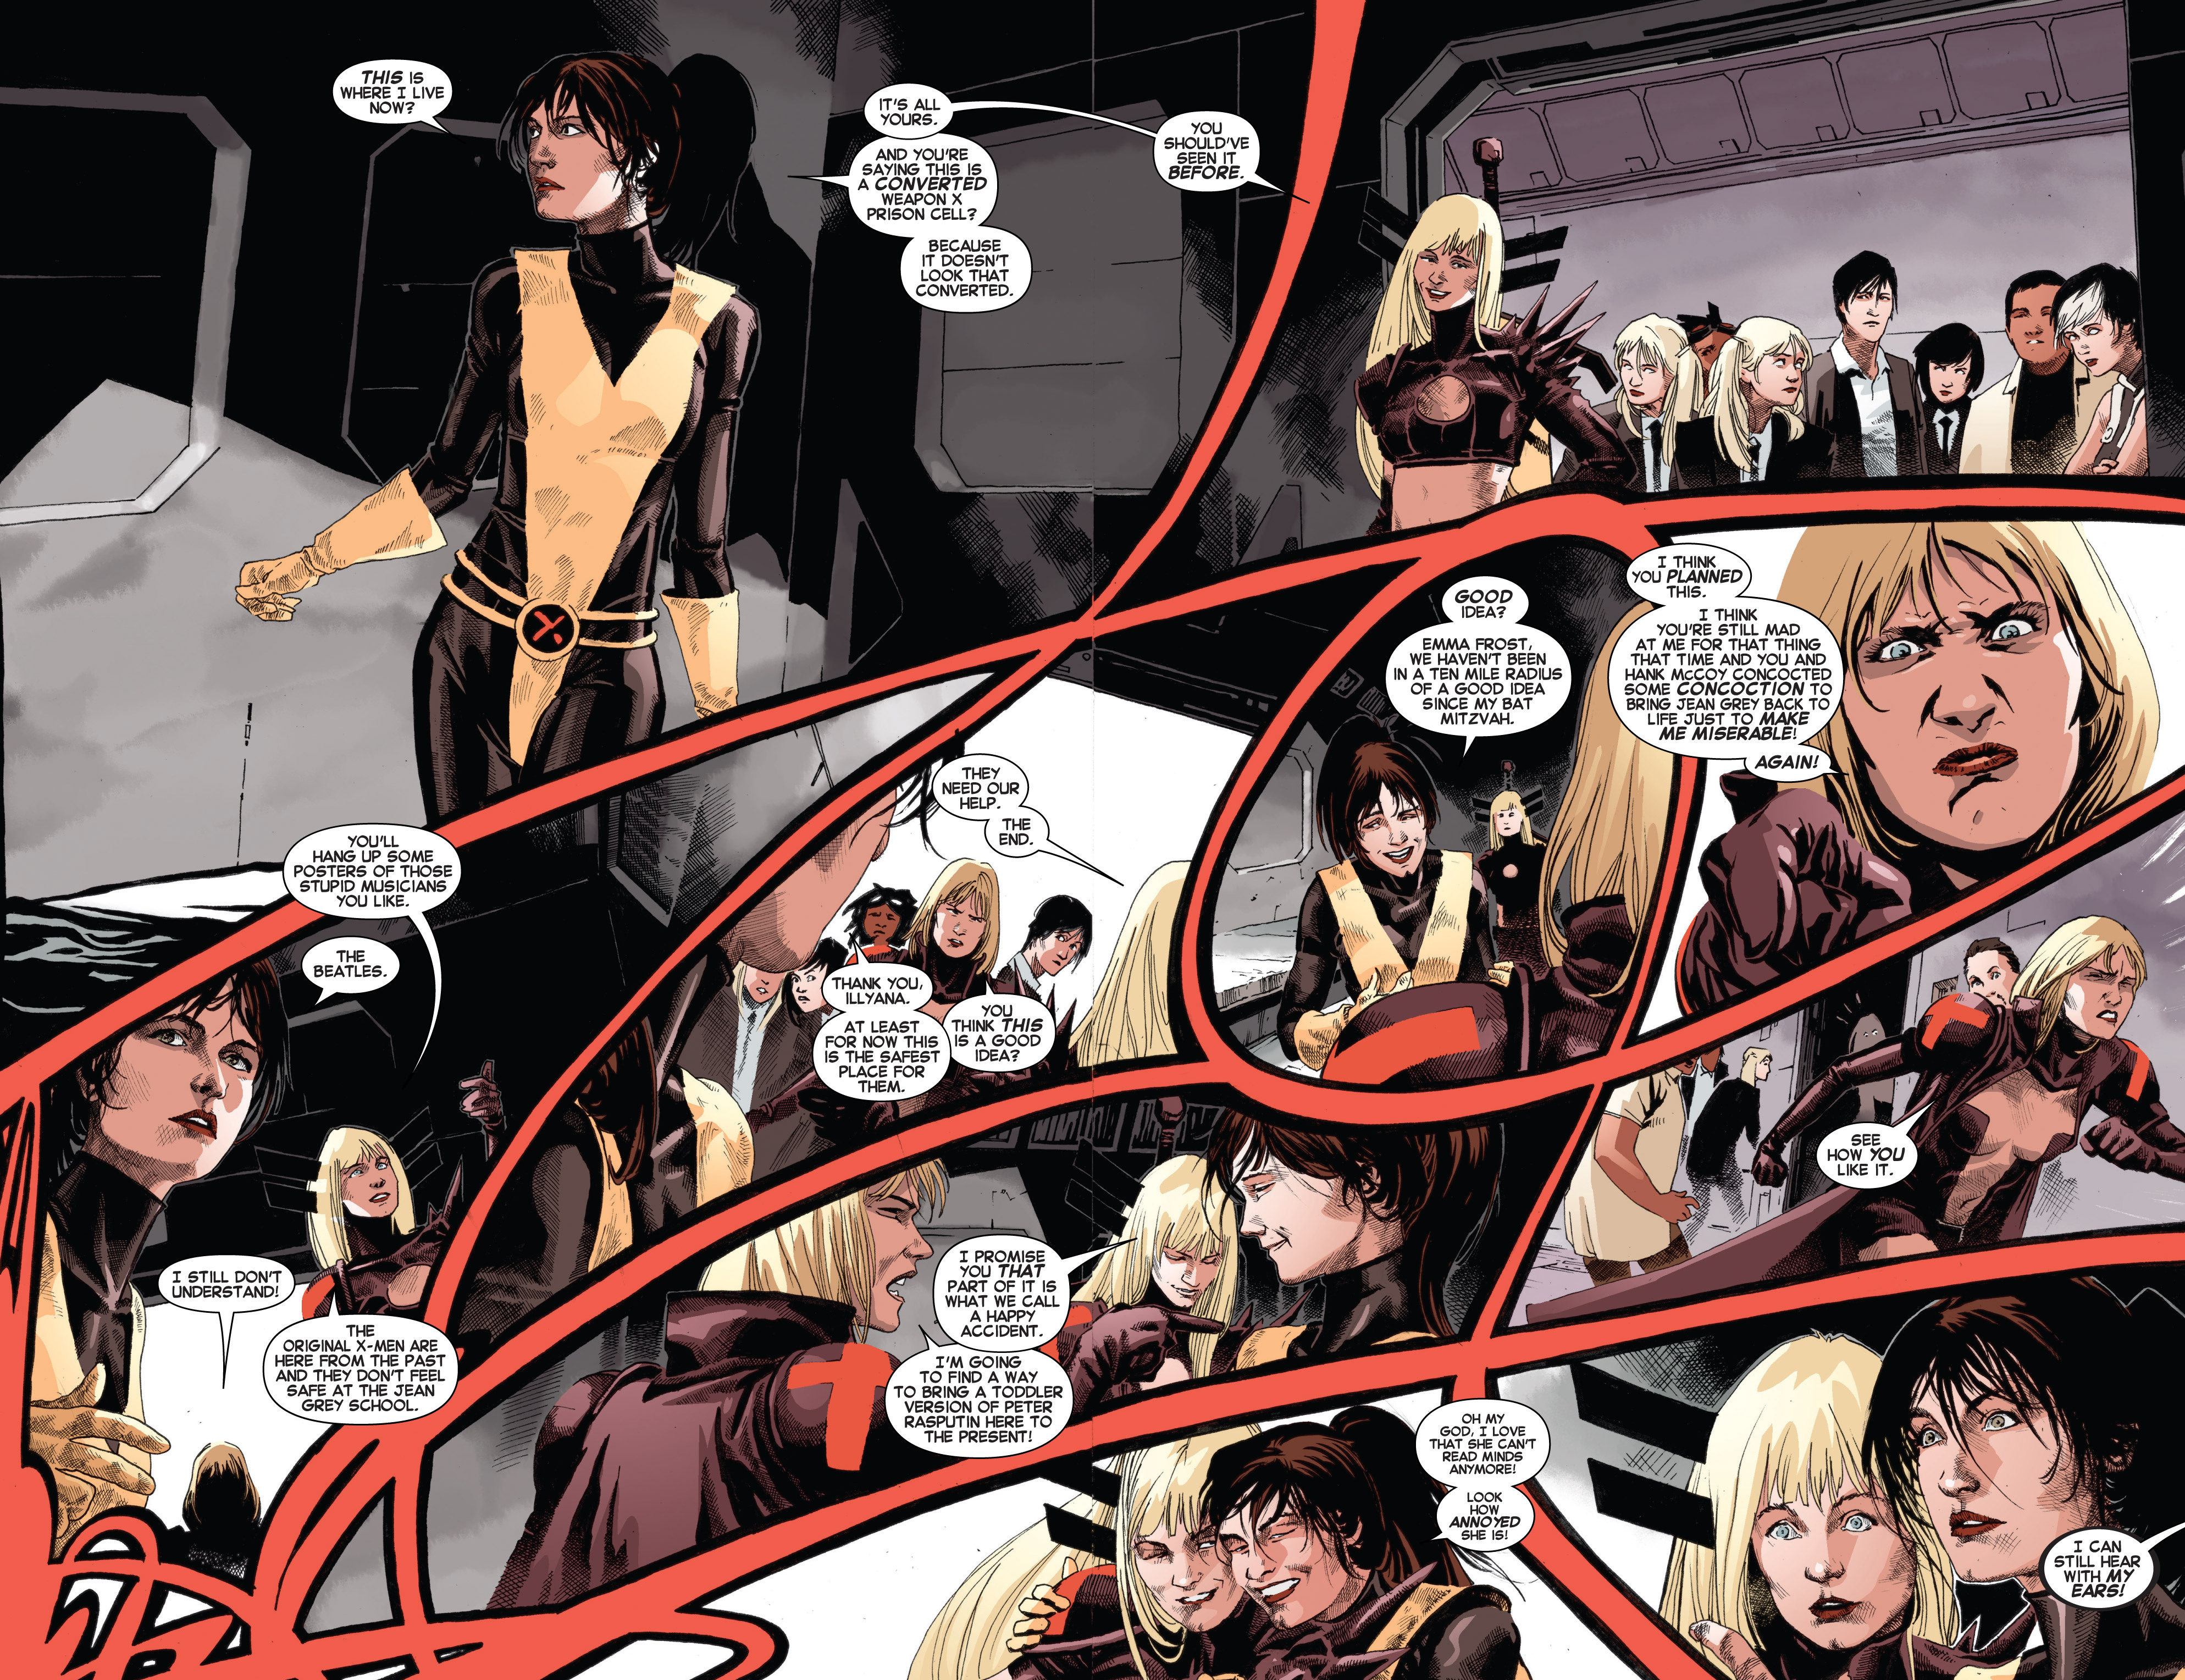 Read online Uncanny X-Men (2013) comic -  Issue # _TPB 3 - The Good, The Bad, The Inhuman - 98